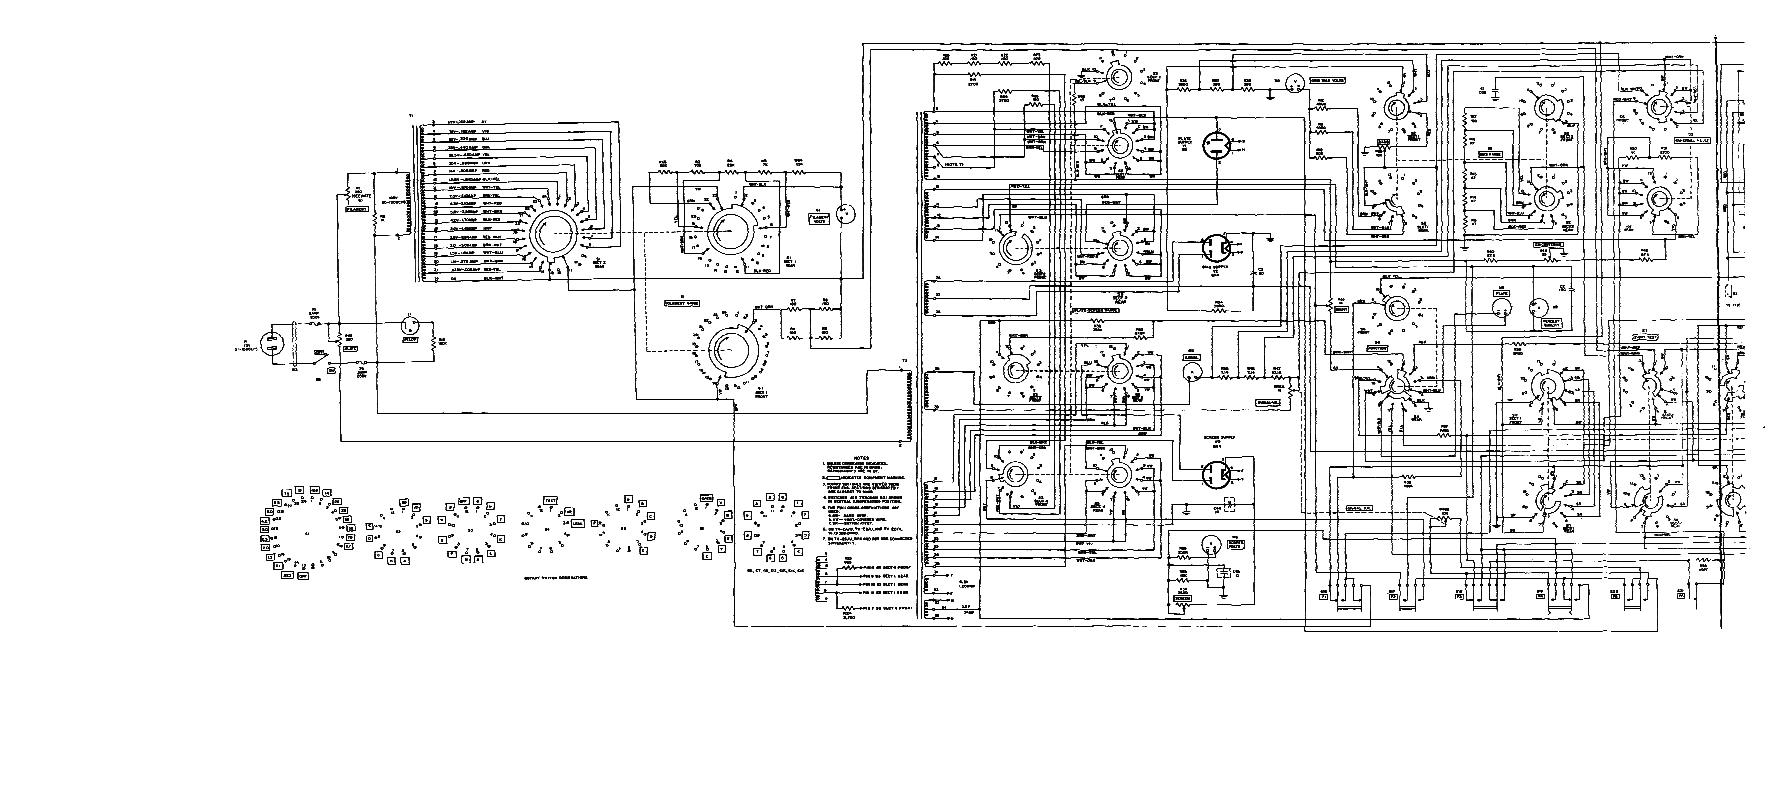 lg 47le5400 lcd tv schematic diagram wiring diagram paper samsung lcd tv schematic diagram [ 1787 x 786 Pixel ]